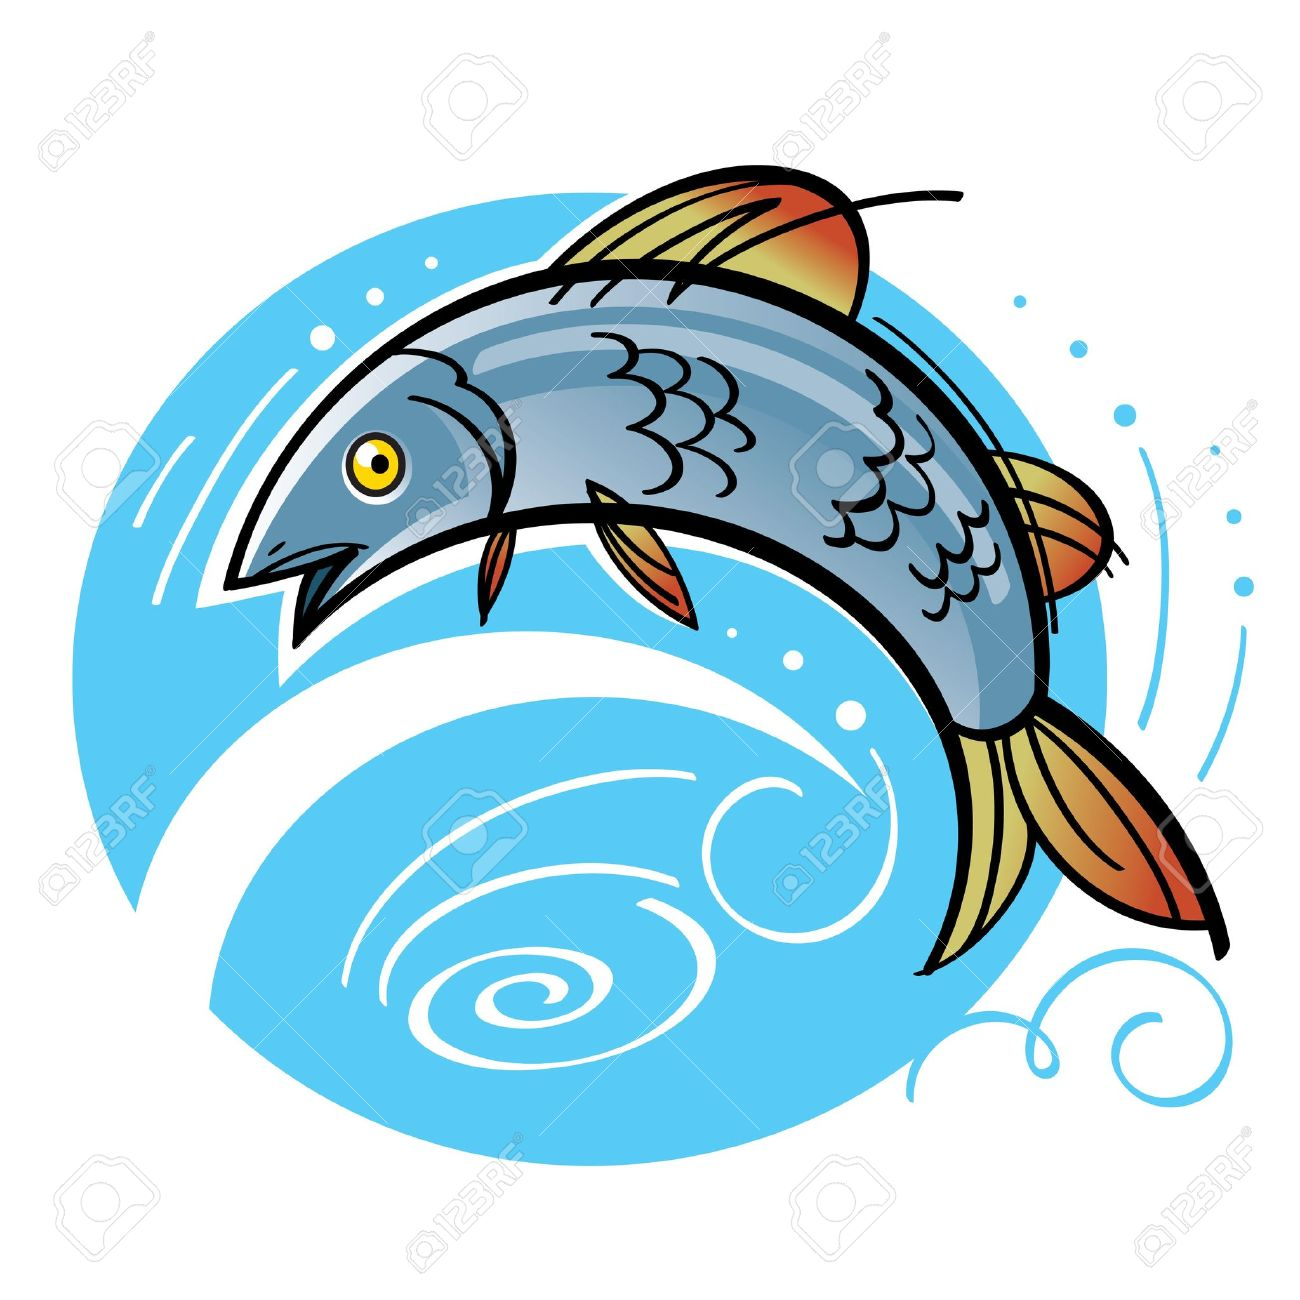 Jumping salmon clipart banner download Fish Salmon Fishing Jumping Water River La #357448 ... banner download